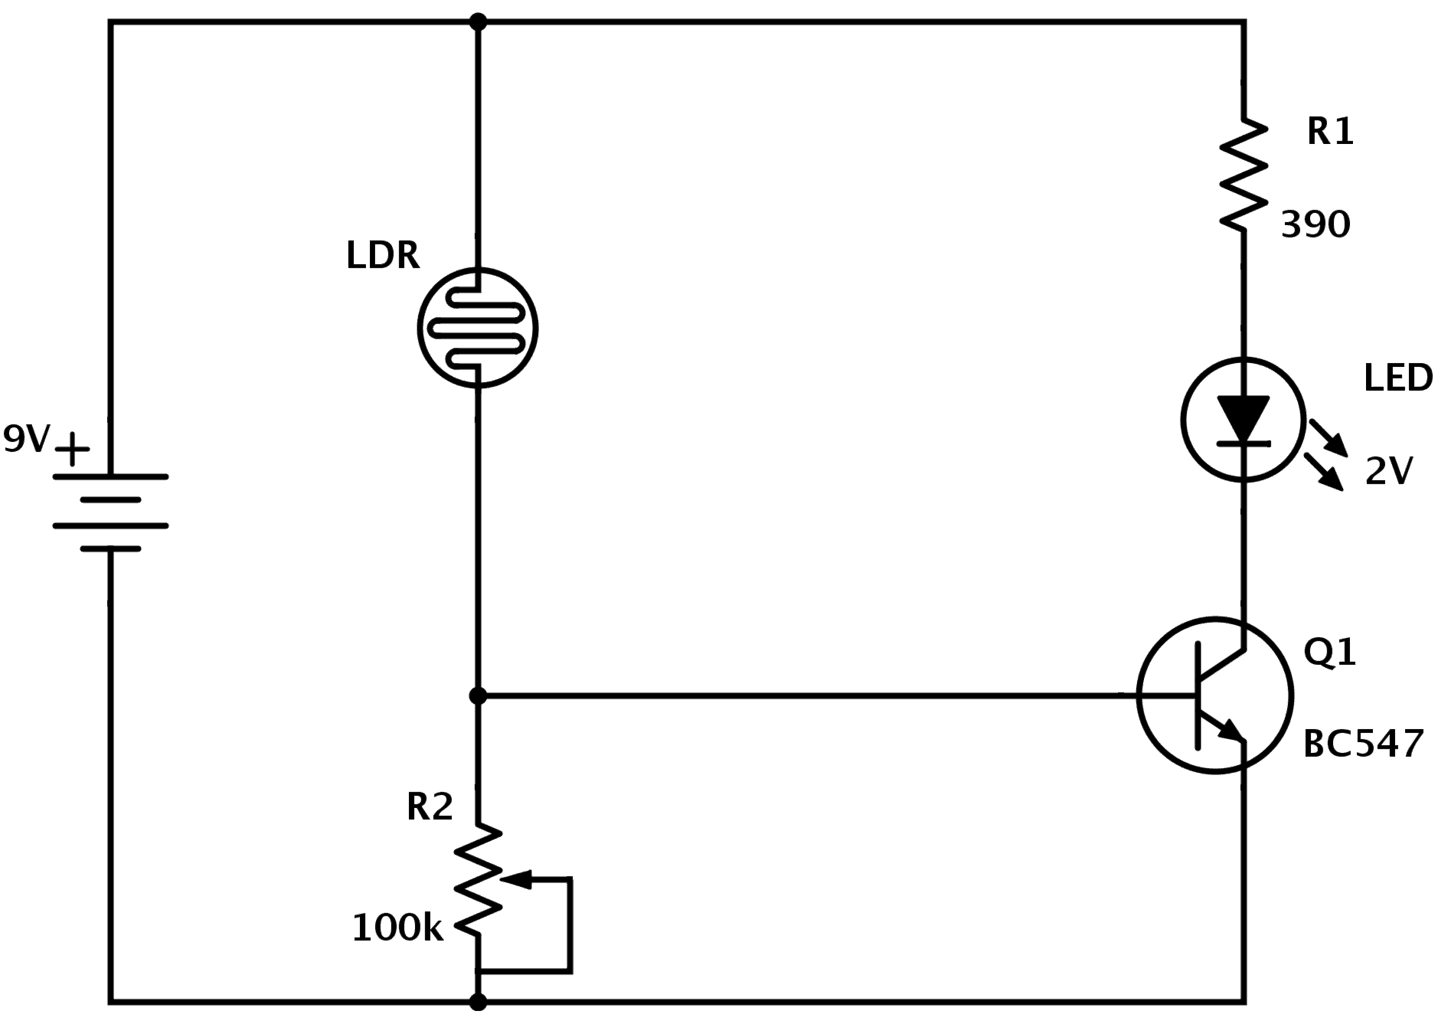 circuit diagram how to read and understand any schematic rh build electronic circuits com Electrical Schematic Diagrams Circuits Simple Schematic Diagram